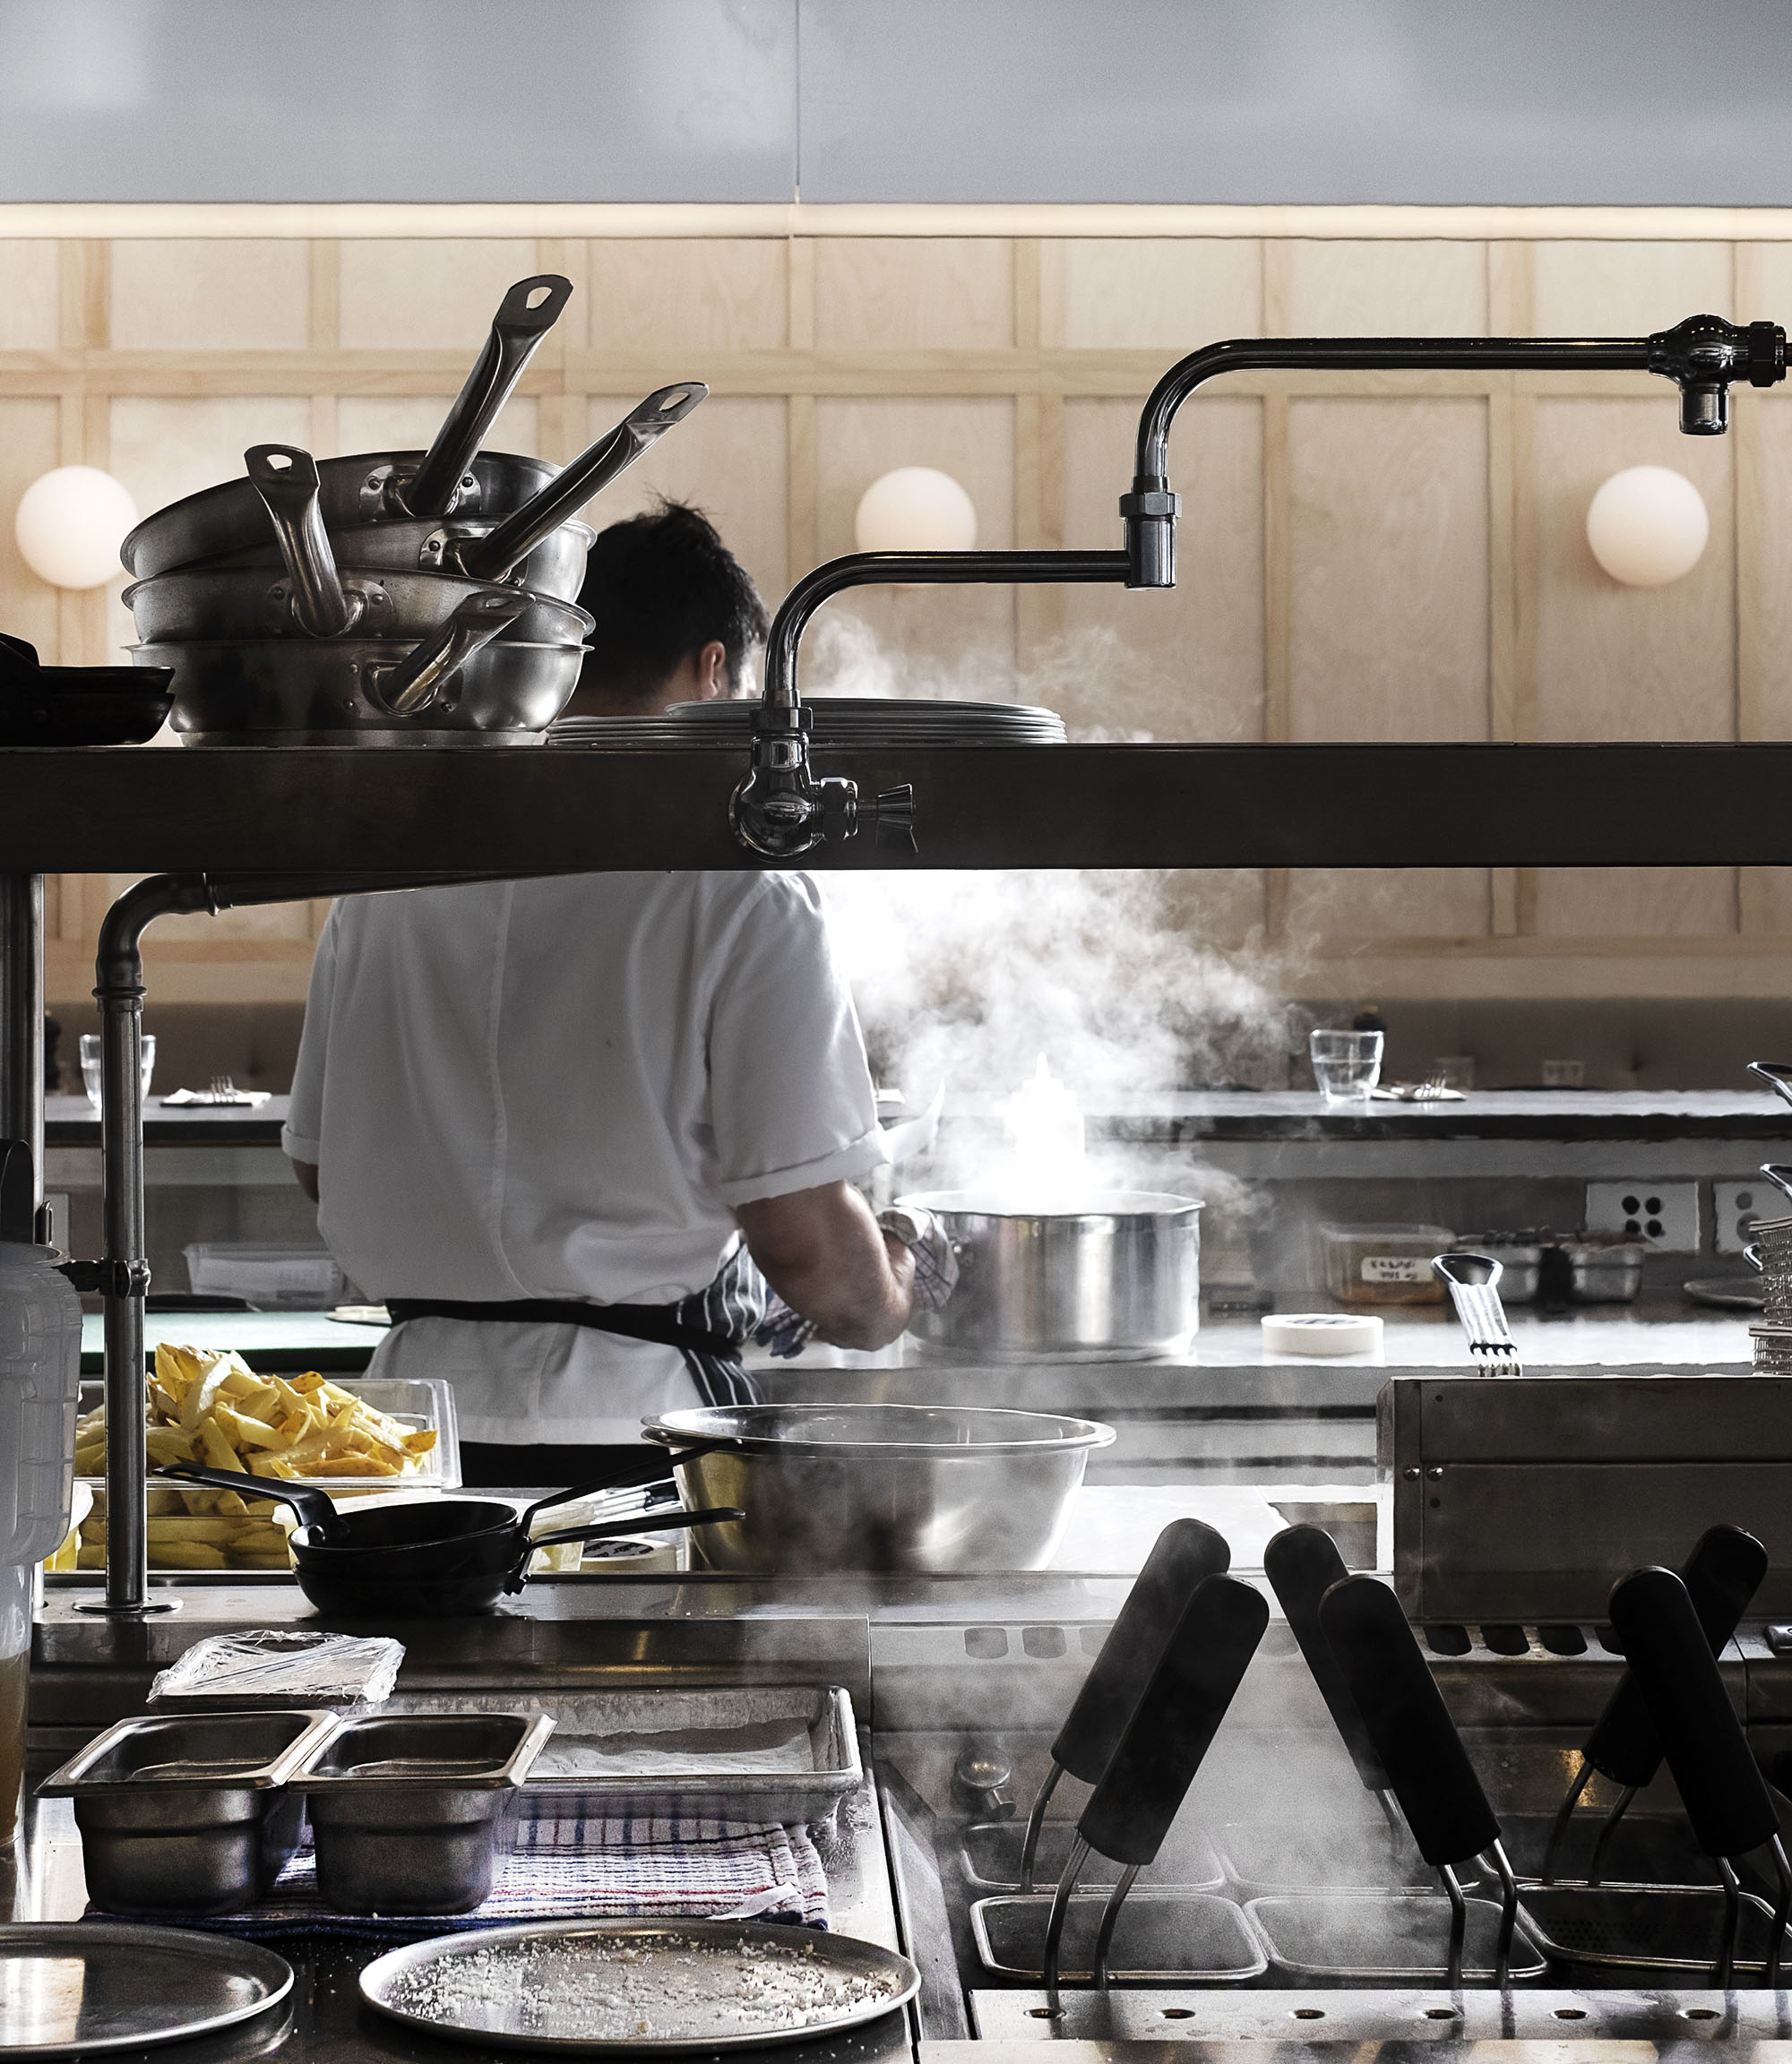 Ozone_Kitchen_SRGB0919_web.jpg